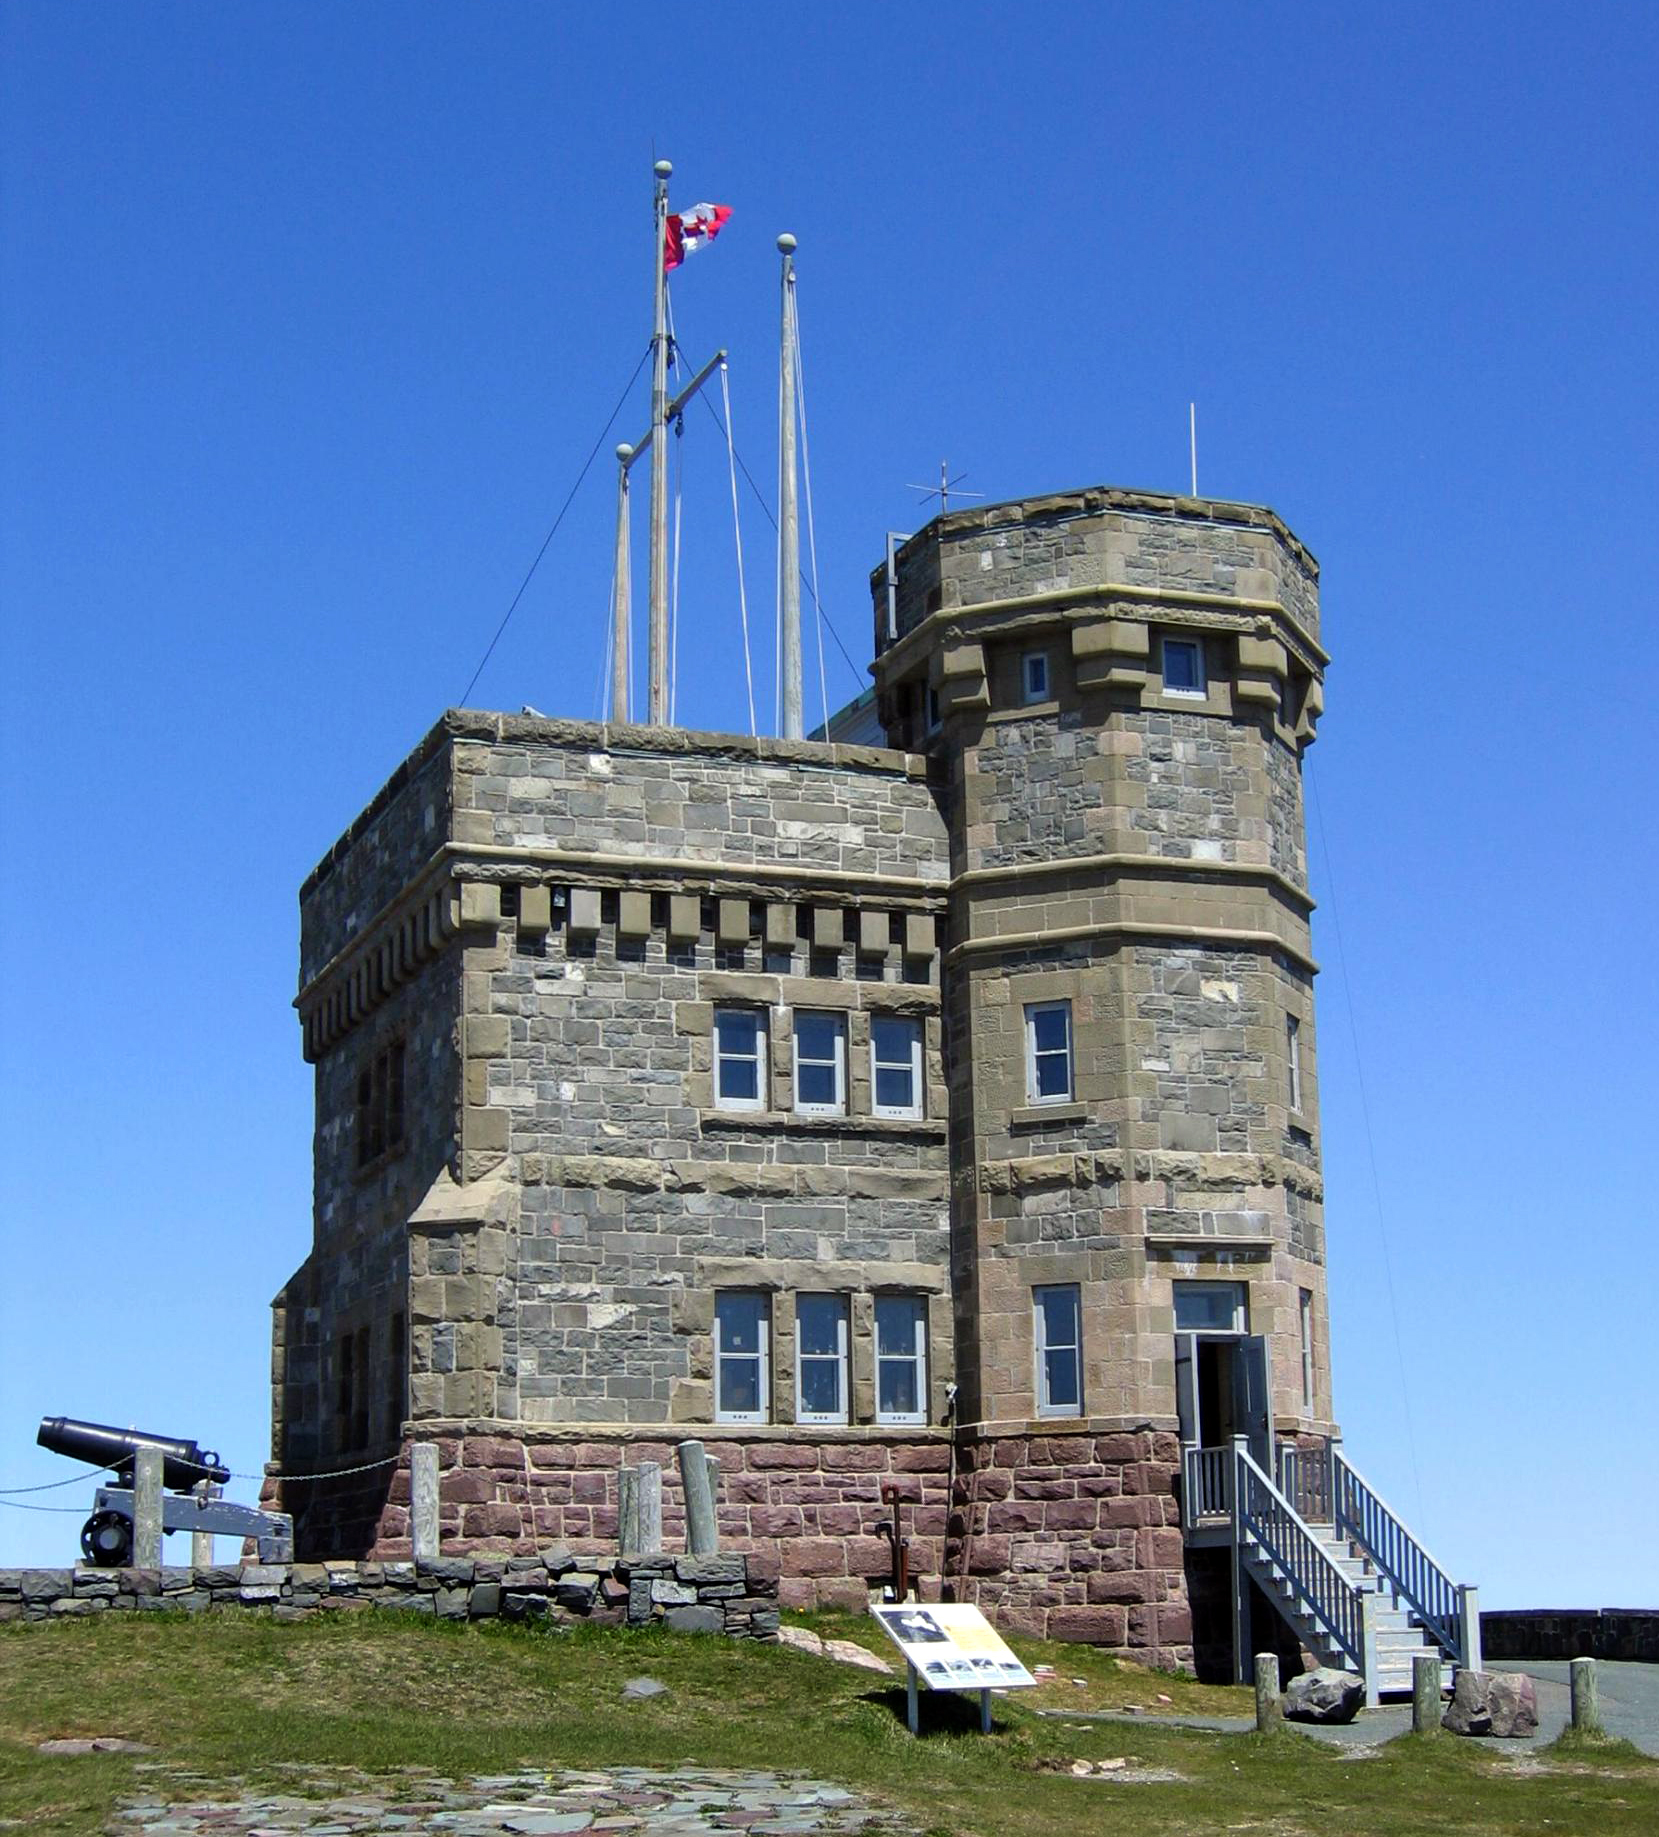 John Cabot and a Tale of 2 Towers - The Official Globe Trekker Website